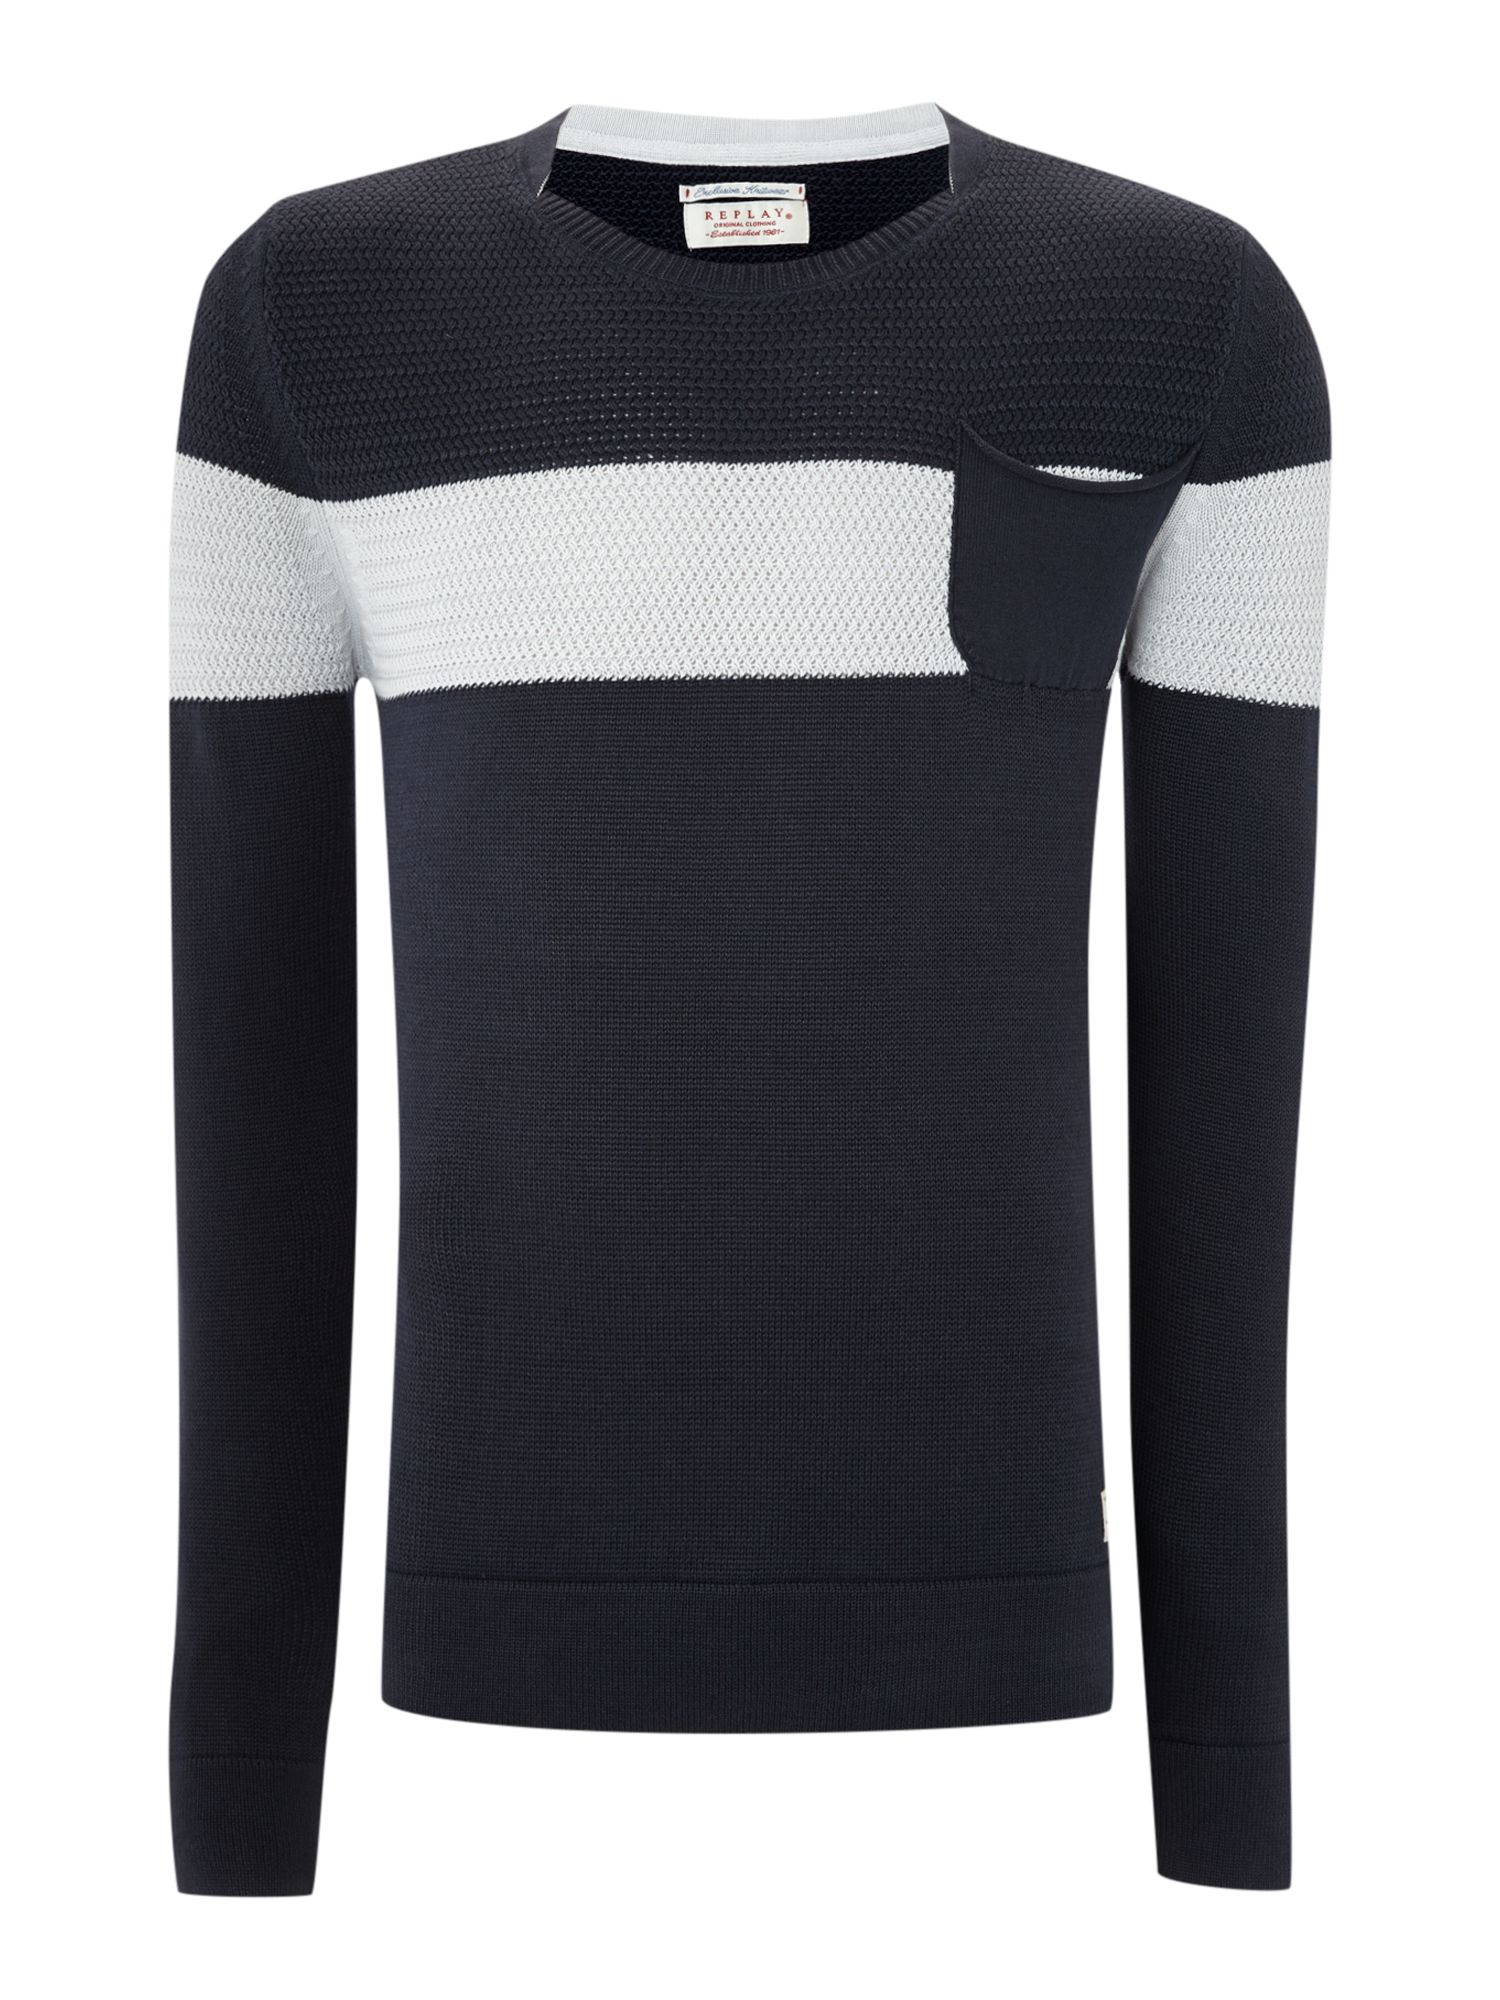 Round neck with one stripe cotton mesh jumper